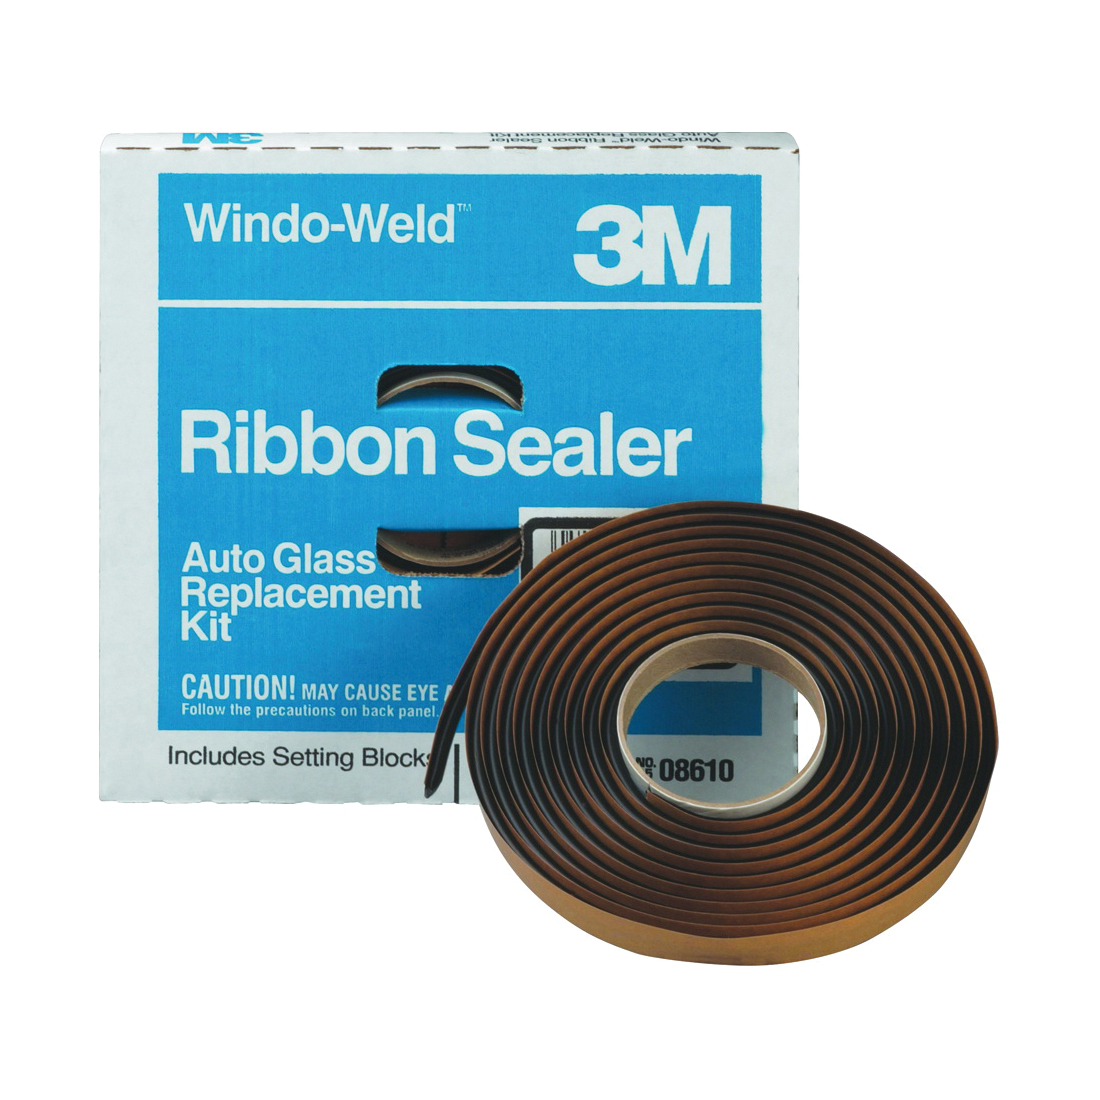 3M™ 051131-06800 Smooth Transition Tape, 30 ft L x 0.63 mm W, Paper Backing